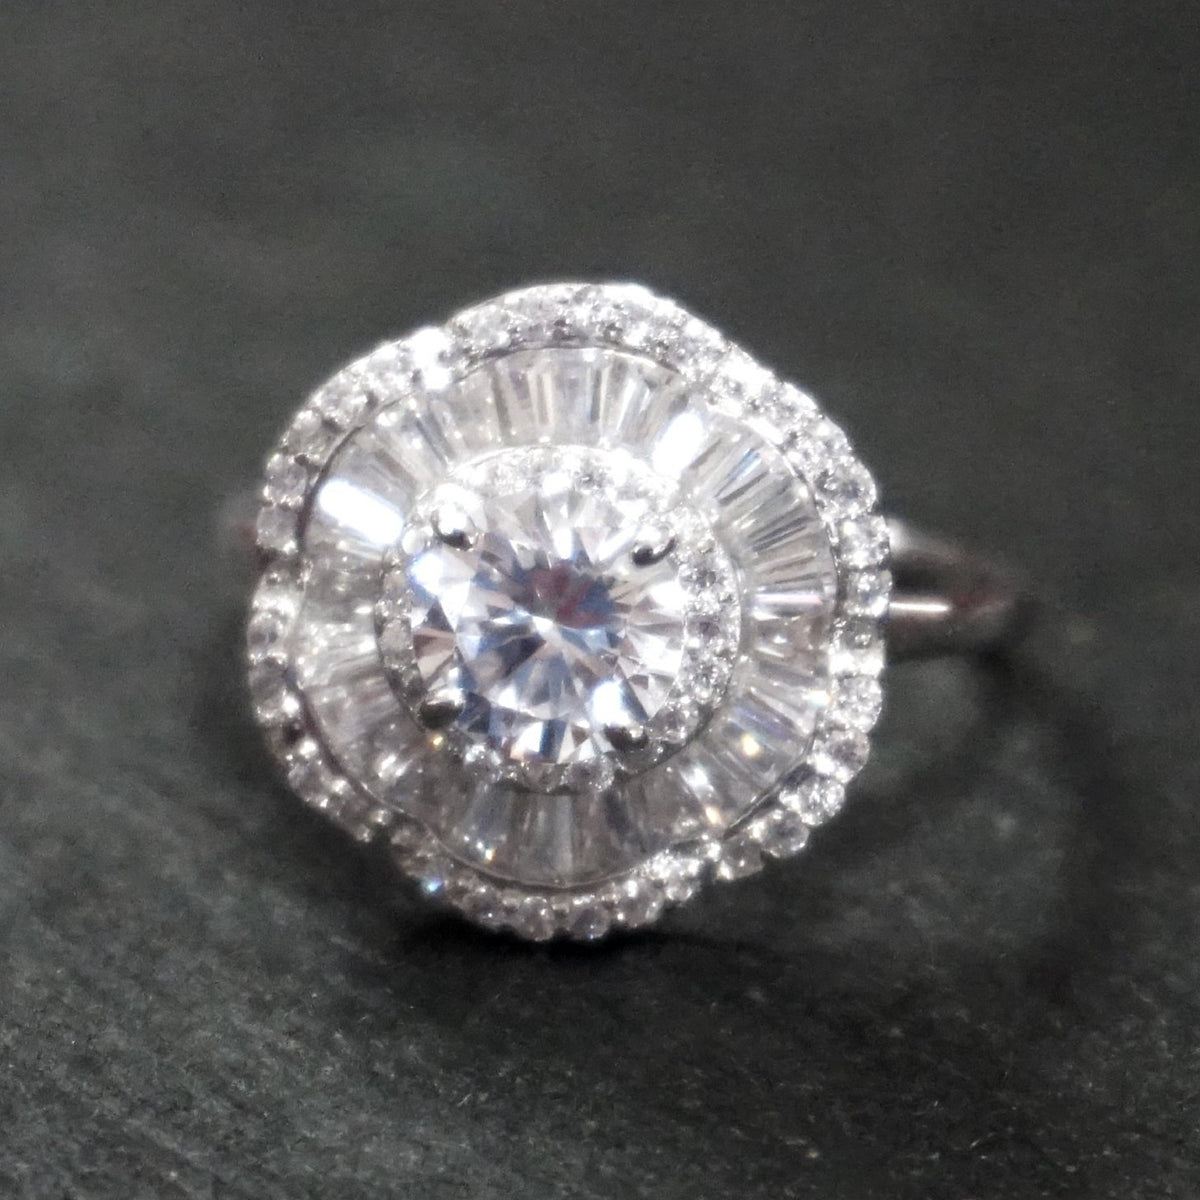 New Cubic Zirconia Handmade 14k Layer On 925 Sterling Silver Floral Round & Baguette Cut Engagement Ring ( Size : 1 0 . 2 5 )